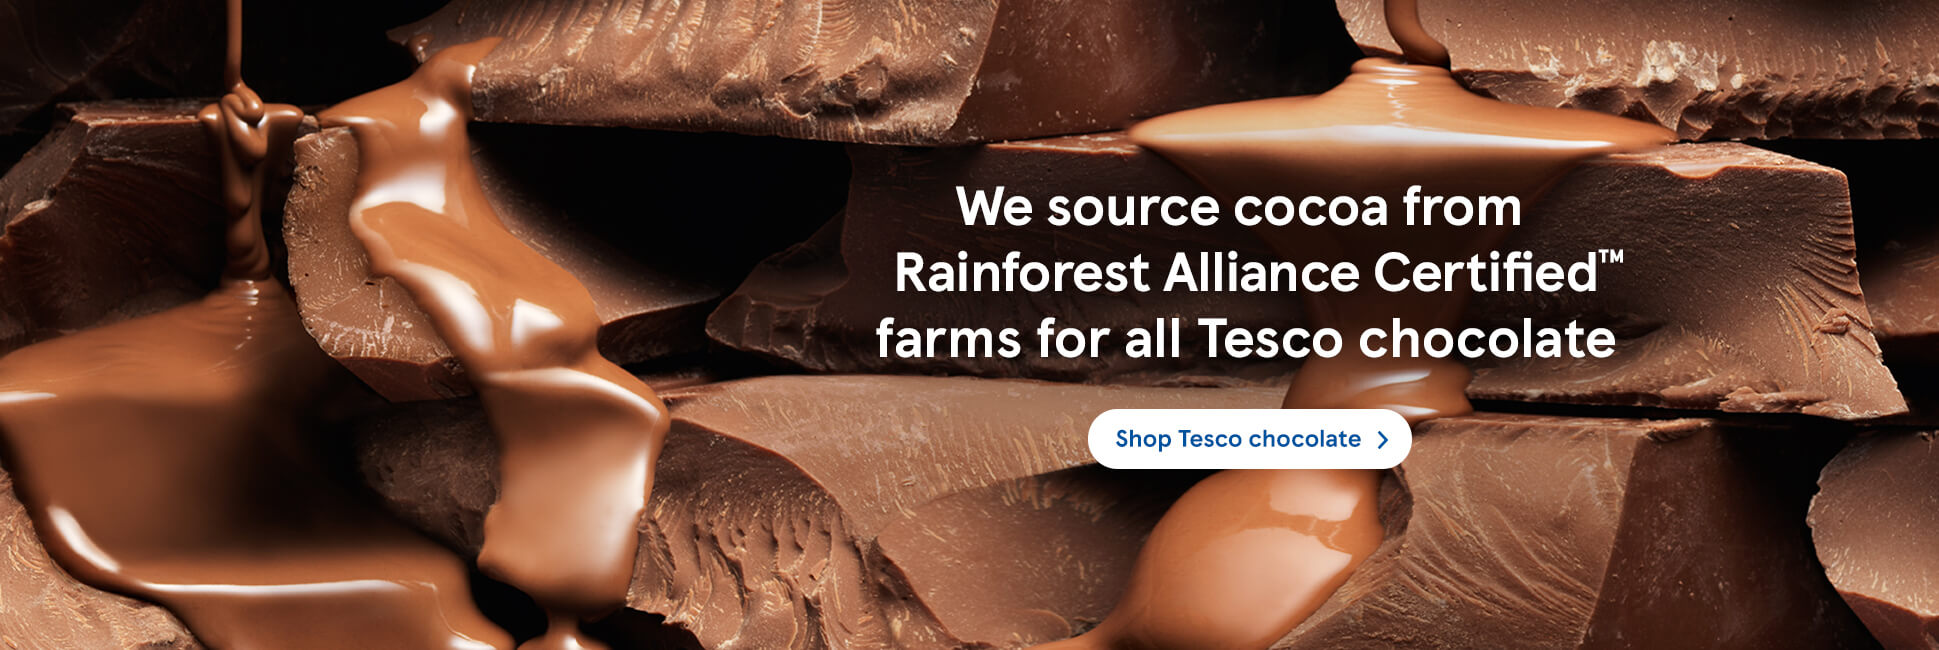 We source cocoa from Rainforest Alliance Certified farms for all Tesco chocolate. Shop Tesco chocolate